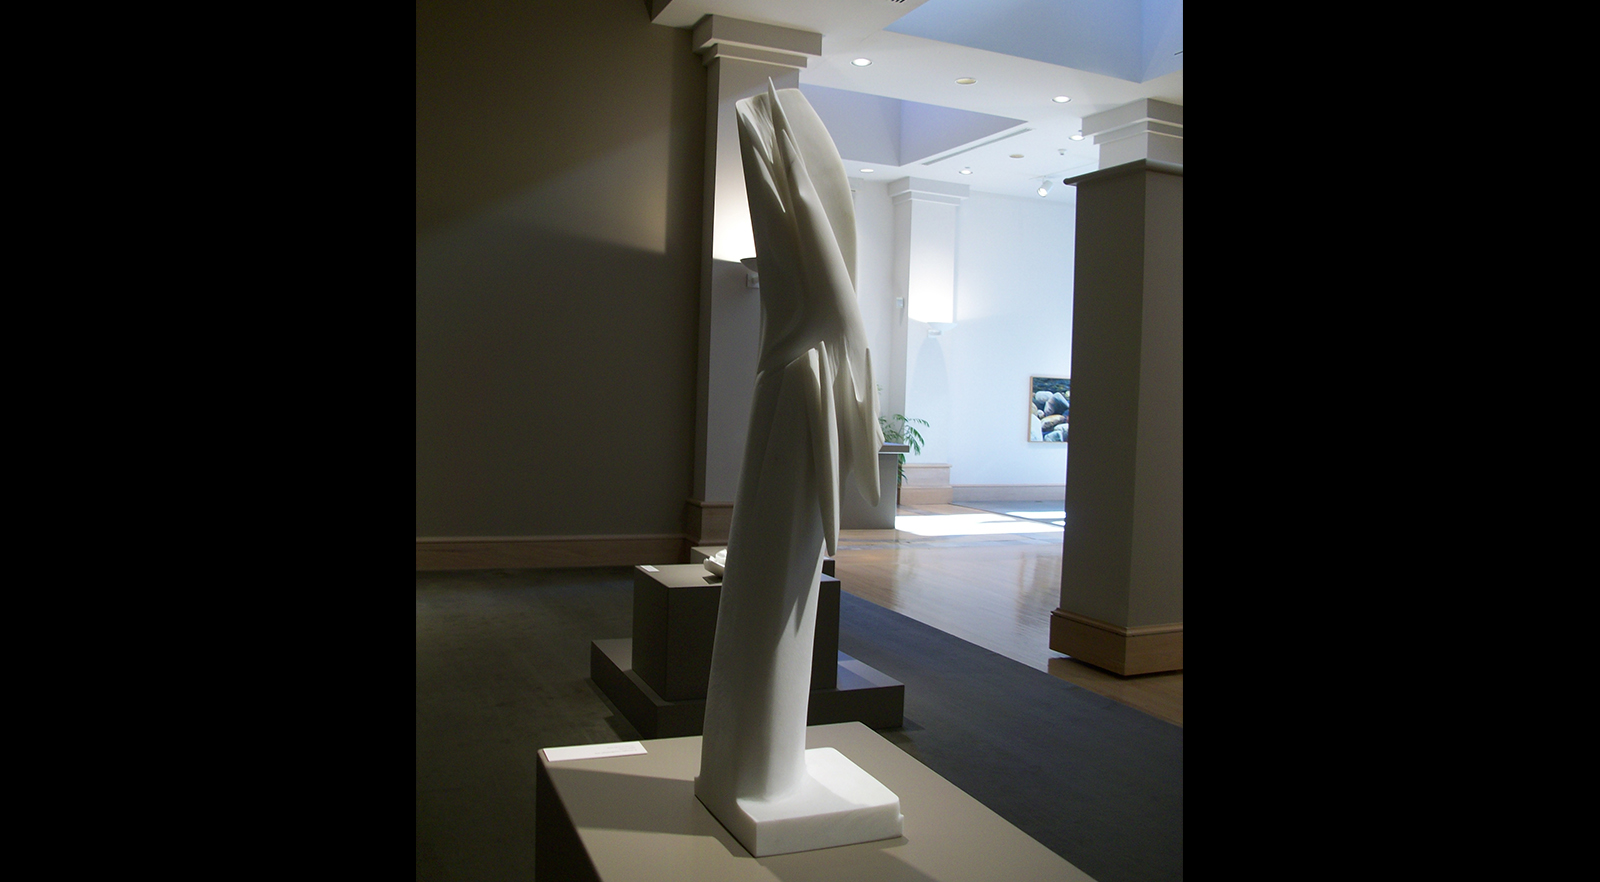 Montgomery Museum of Fine Arts - Alabama (USA) | 2010